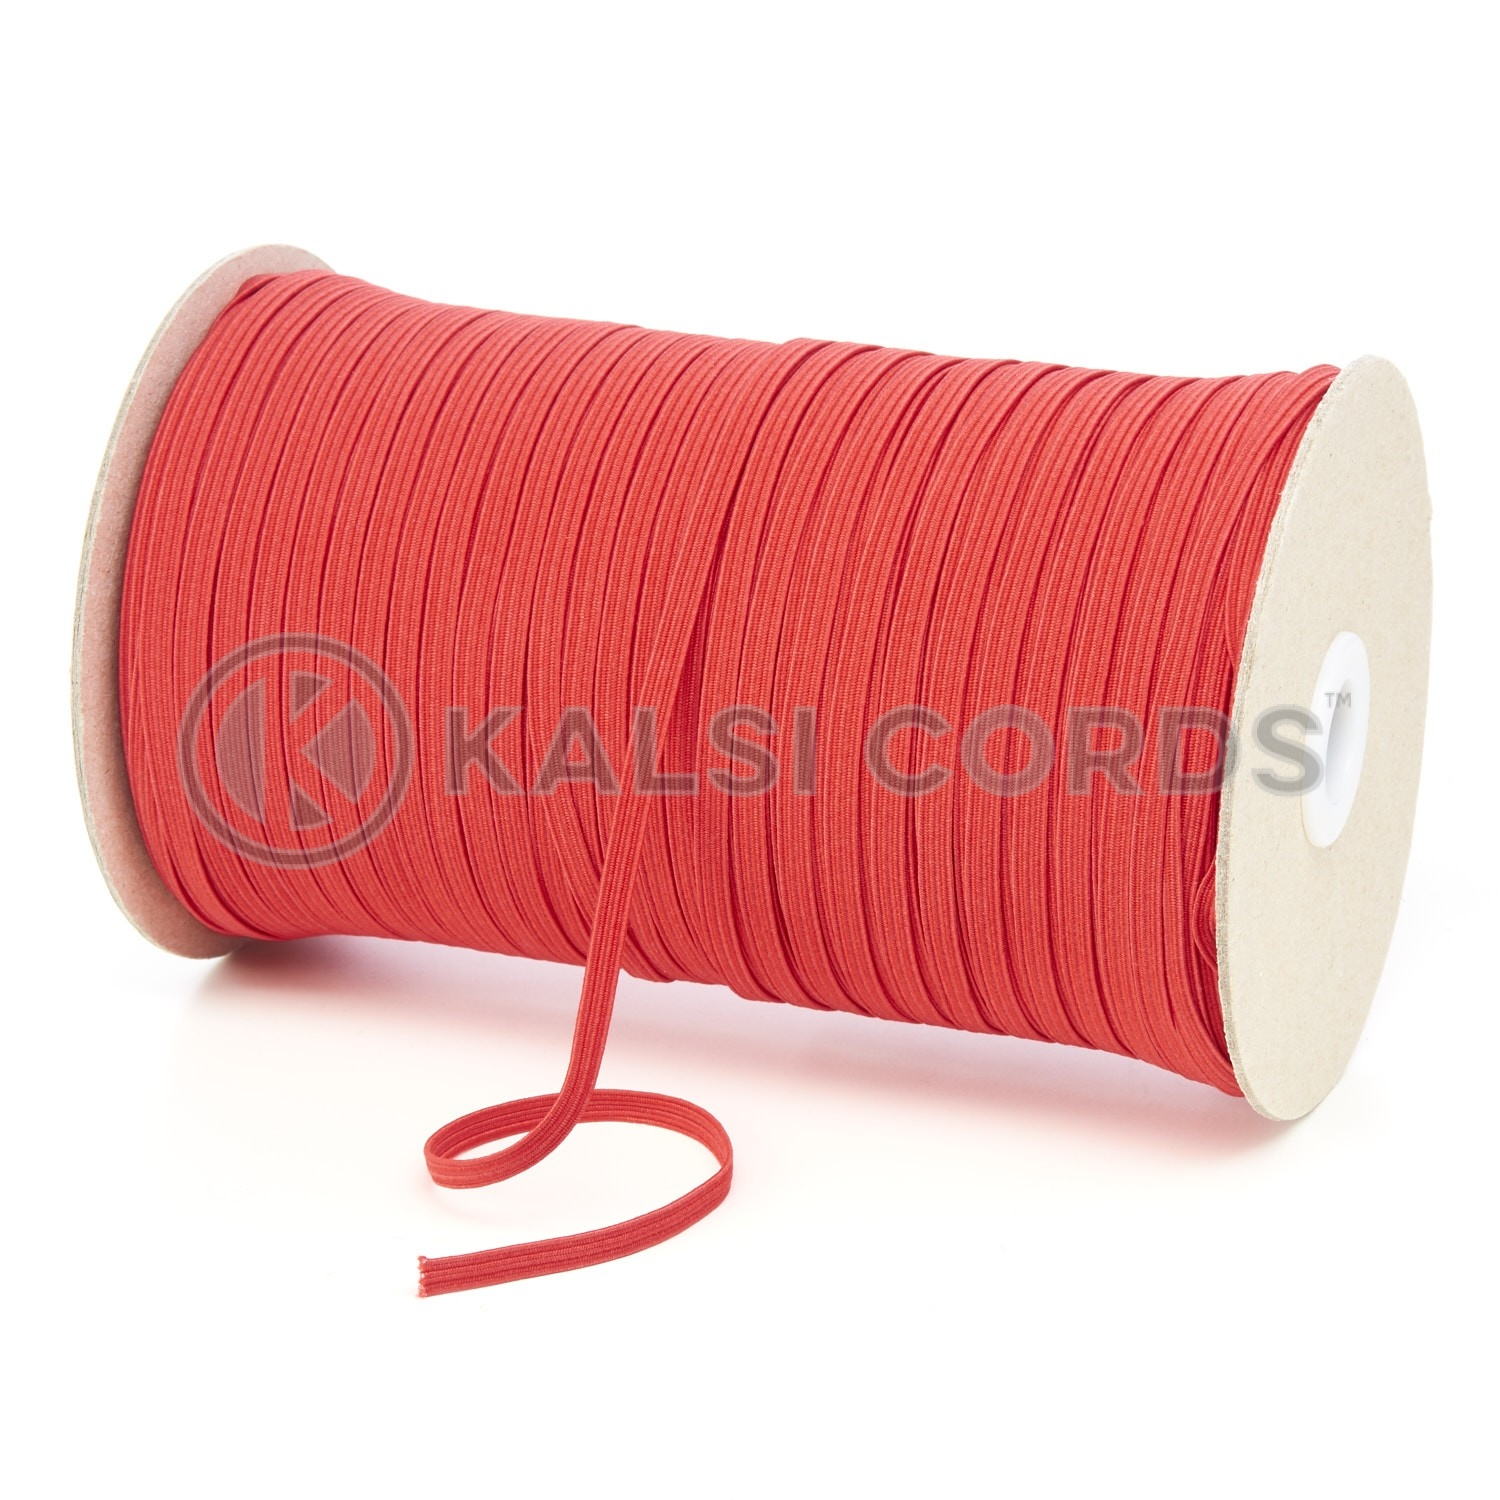 Red 4mm 6 Cord Flat Braided Elastic Roll Sewing Face Masks TPE10 Kalsi Cords